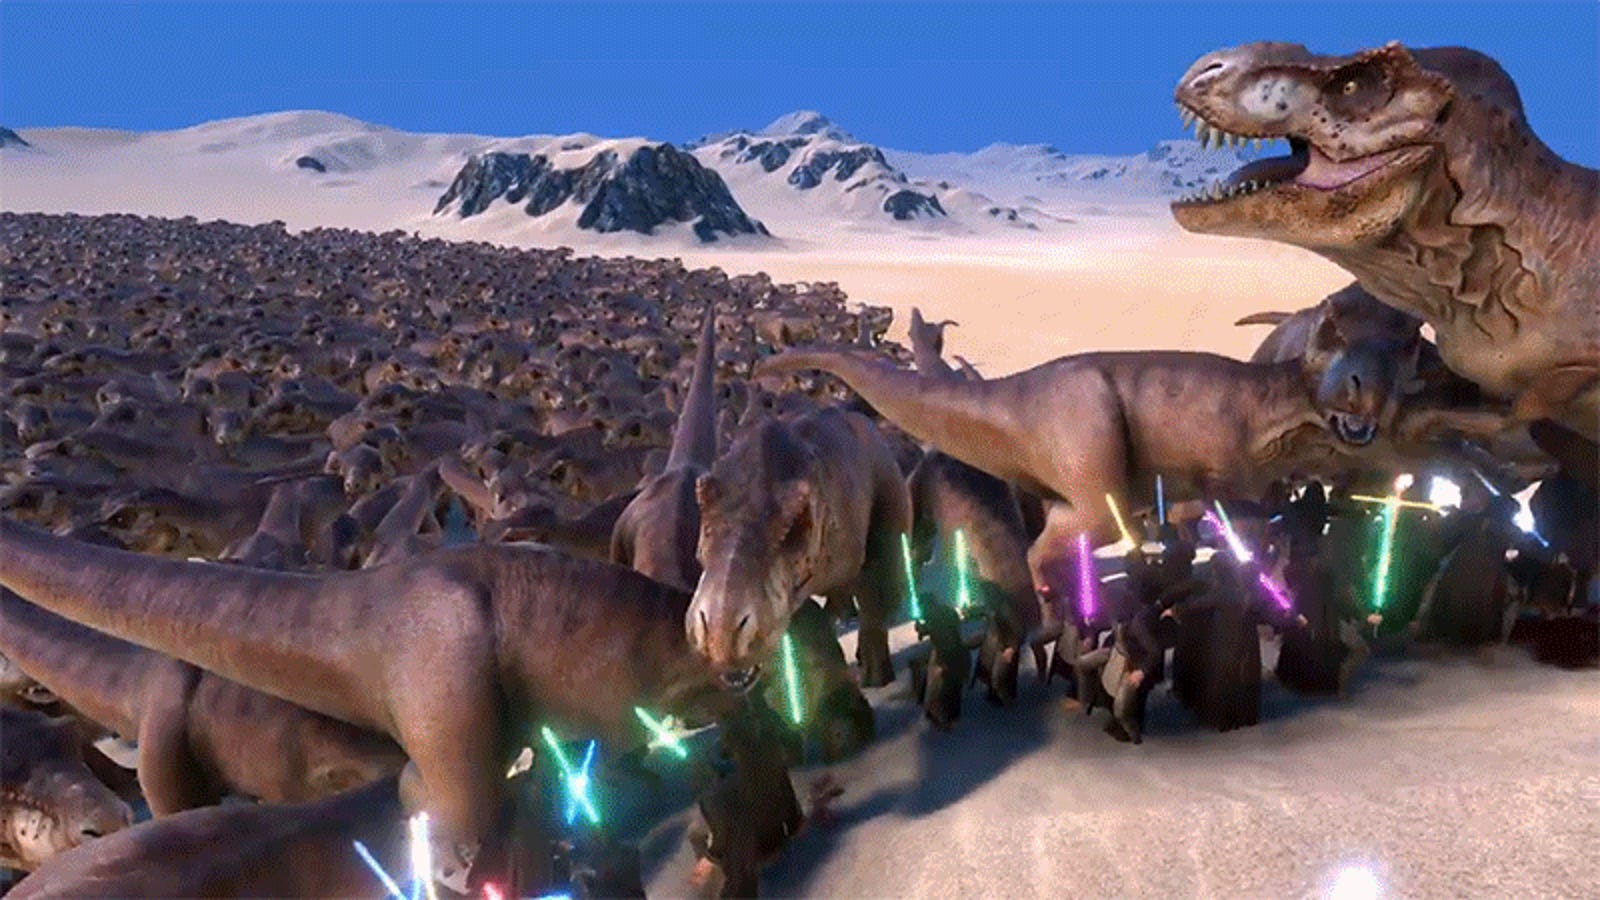 We Finally Know Which Film Franchise Is Better as 20,000 Jedi Battle 3,000 T-rexes